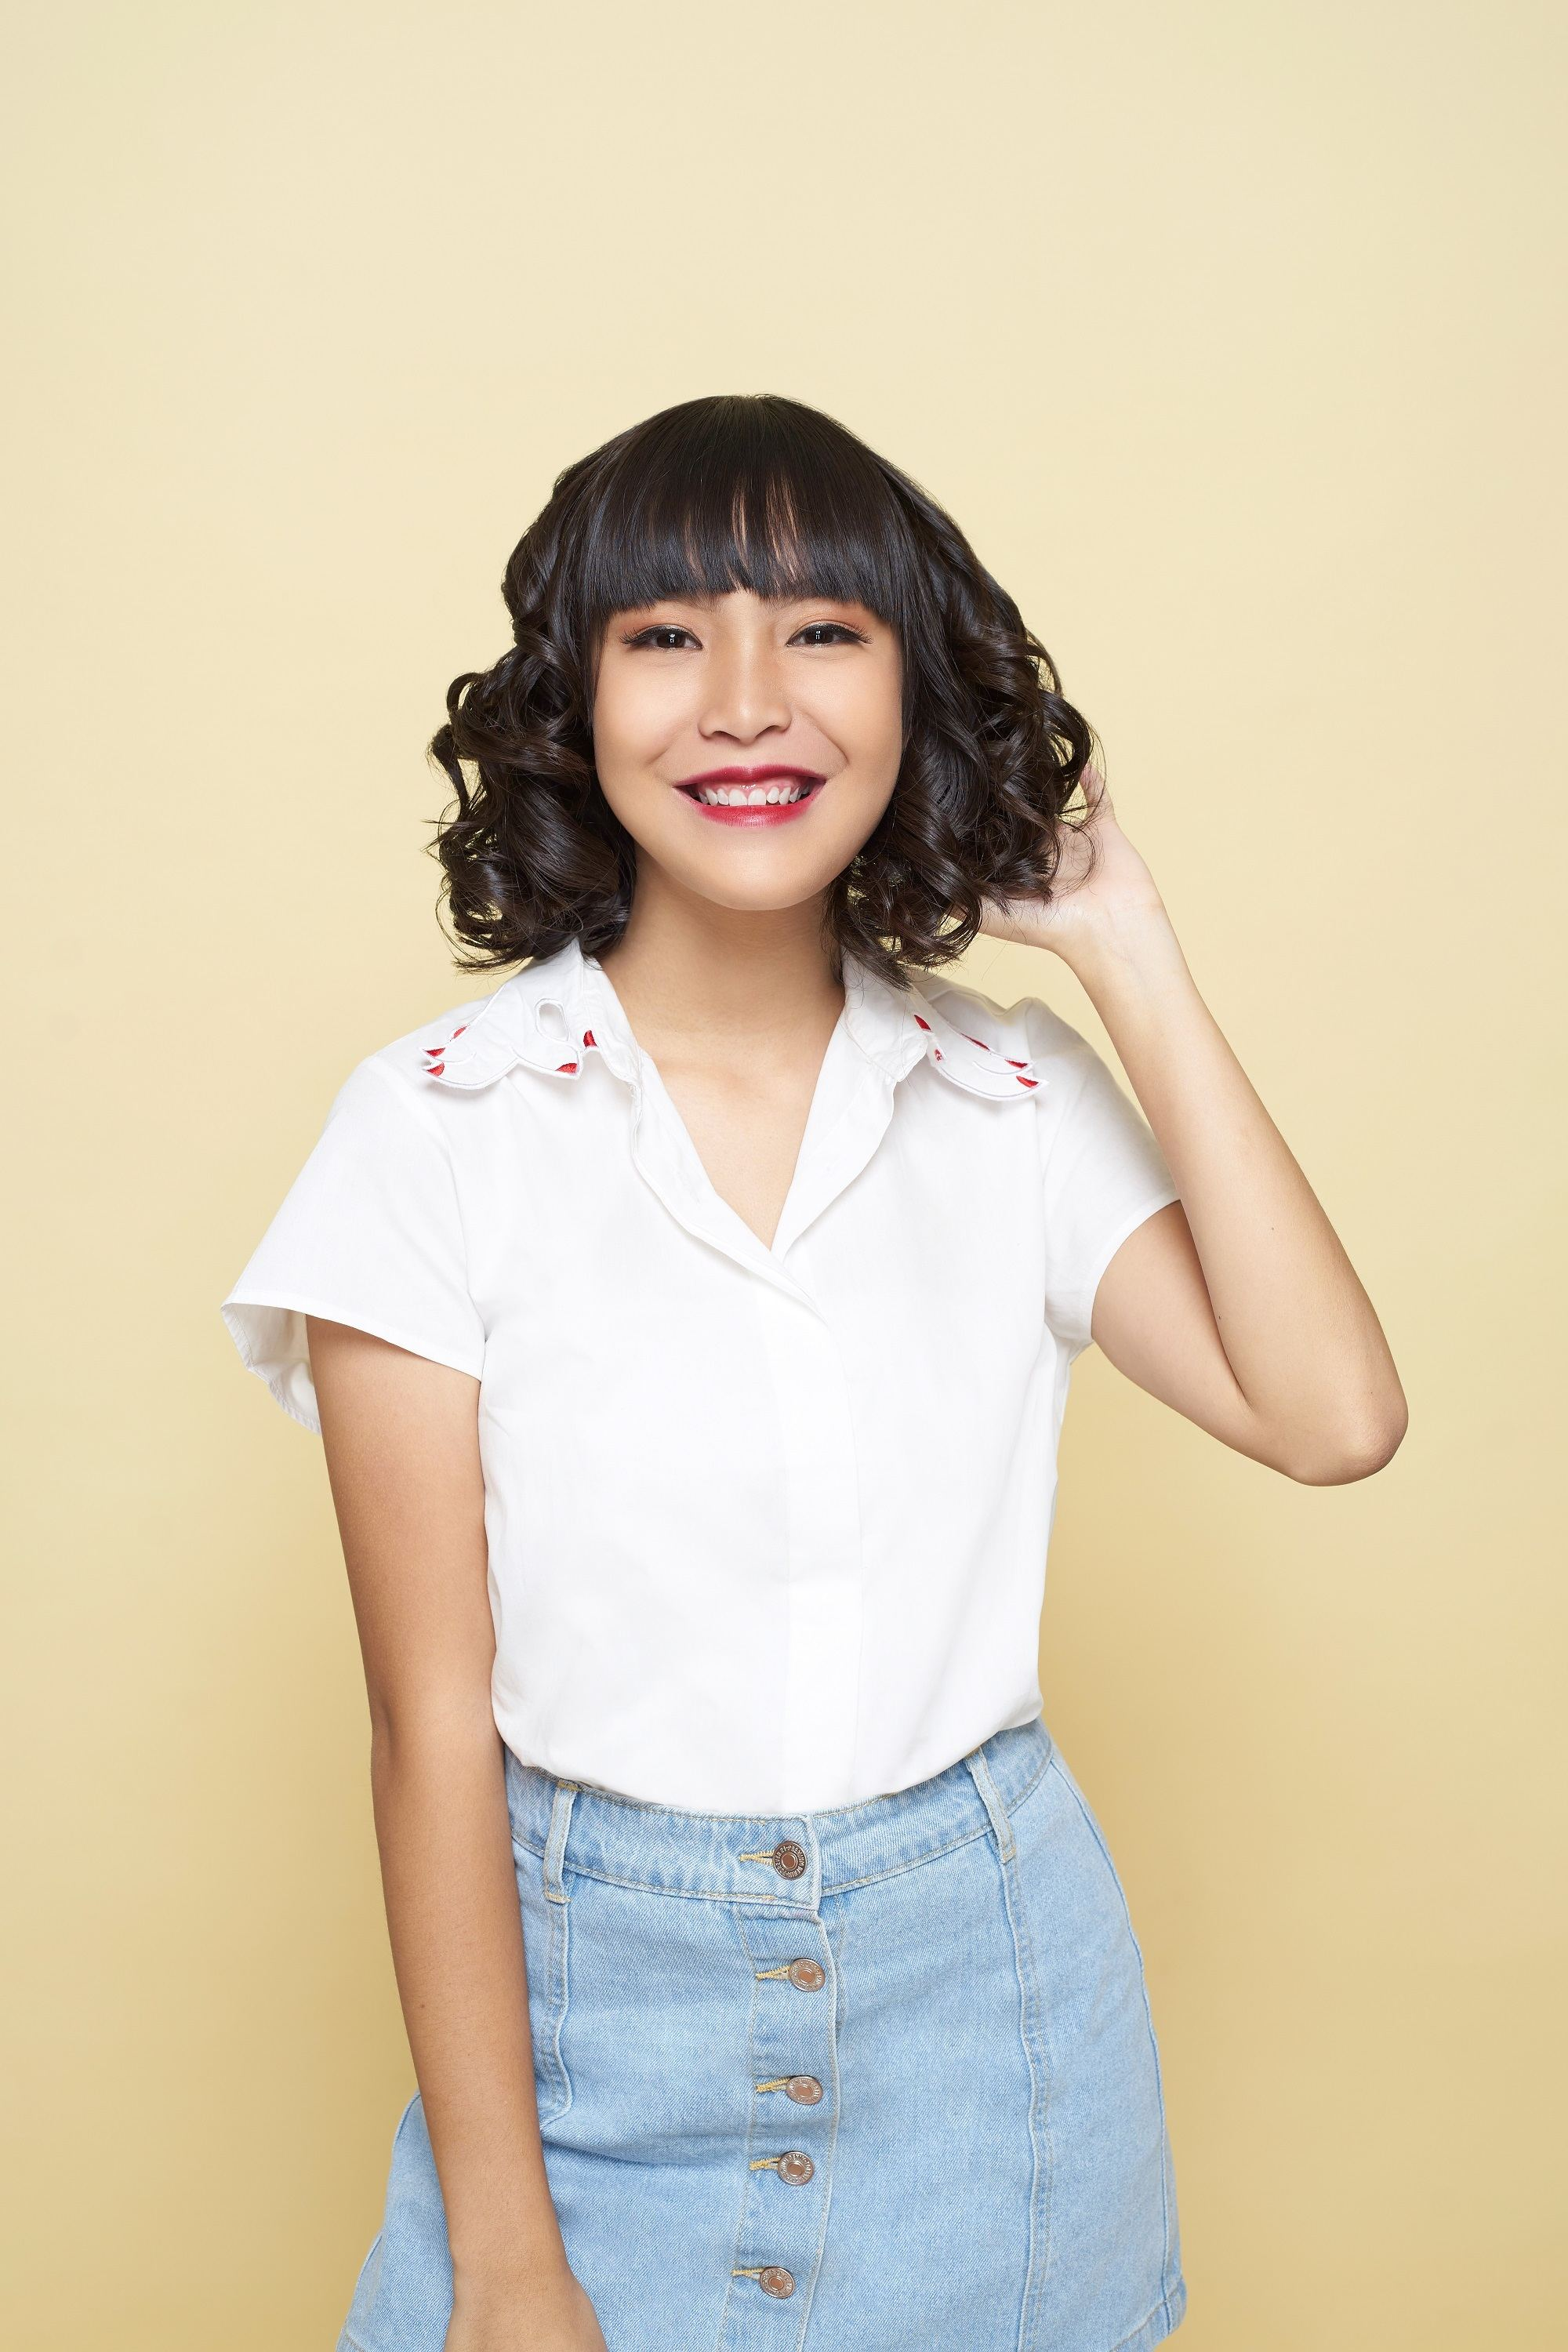 Easy hairstyles for medium hair: Asian woman with lob and spiral curls